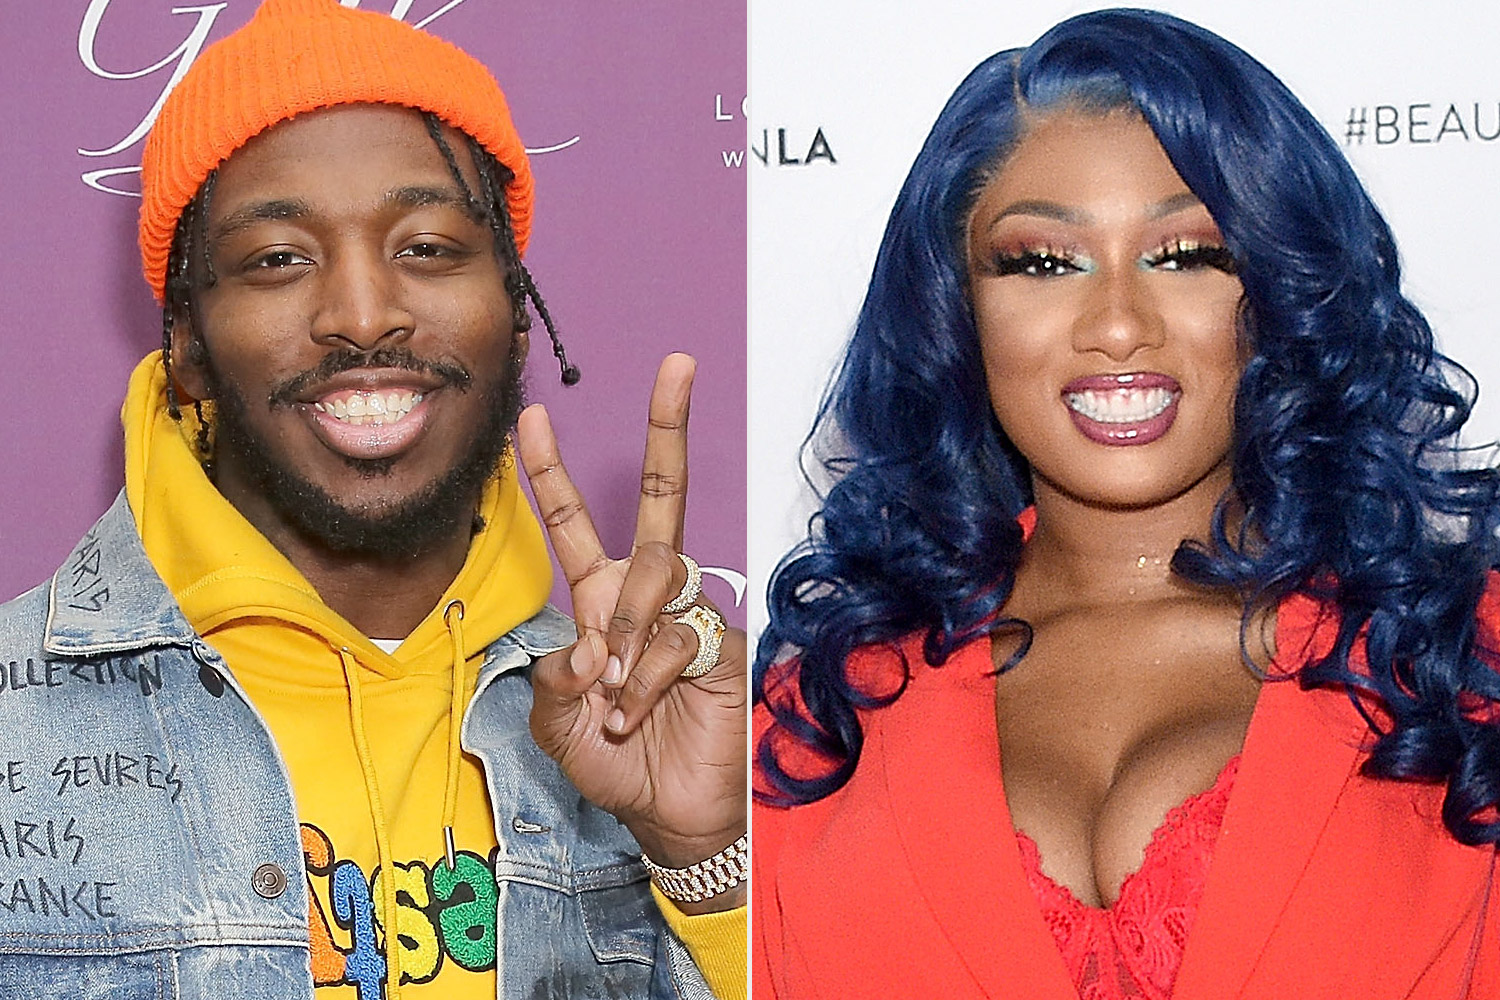 Megan Thee Stallion and Pardison Fontaine